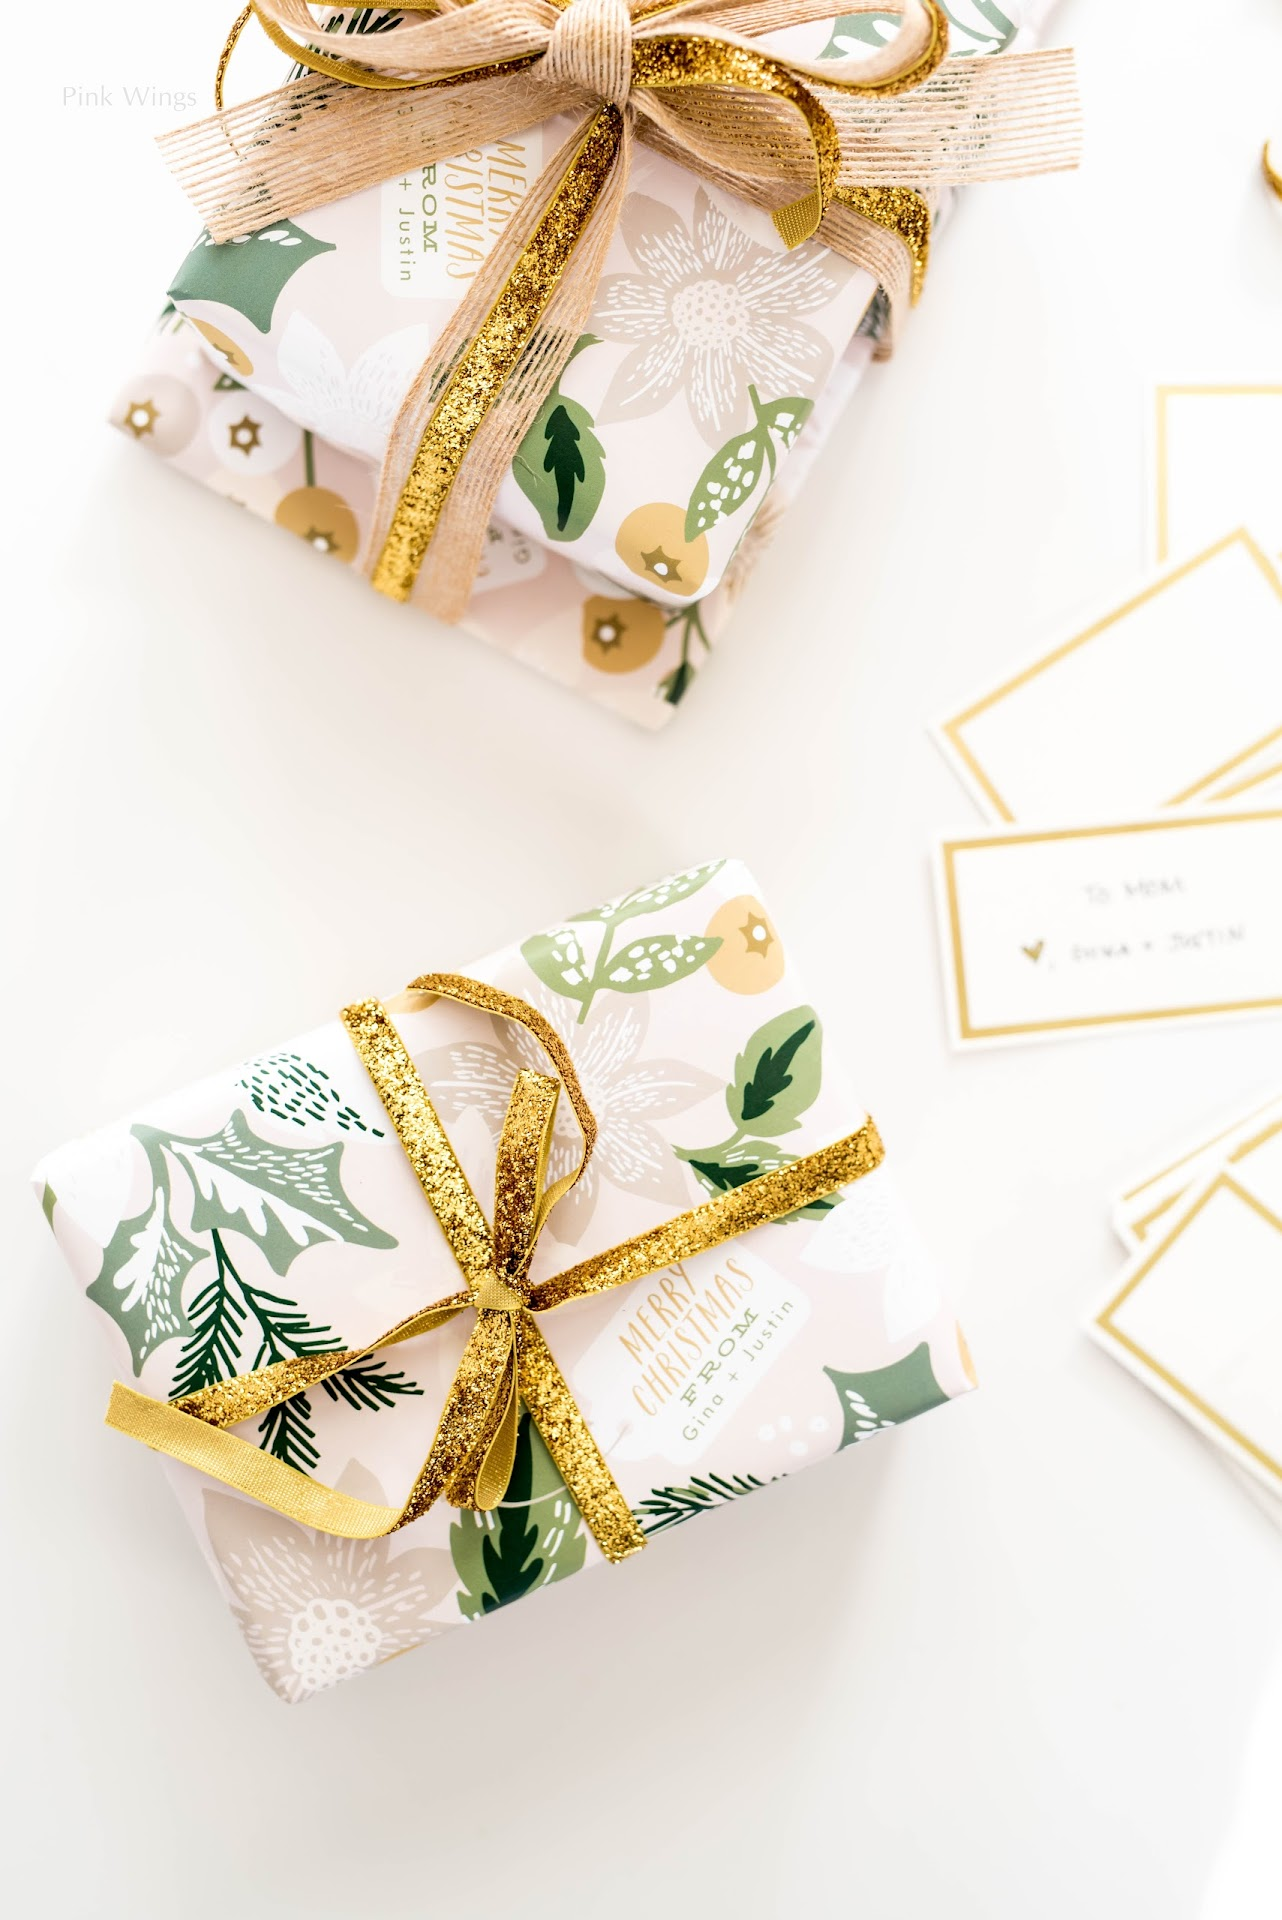 pretty christmas wrapping gifts, personalized gifts, gifts for people who are hard to shop for, gifts for anyone, custom gifts, personalized stationery, pretty gift wrapping, gold gift wrapping, gold ribbon, jute burlap ribbon, classy holiday wrapping paper, gold gift cards tags